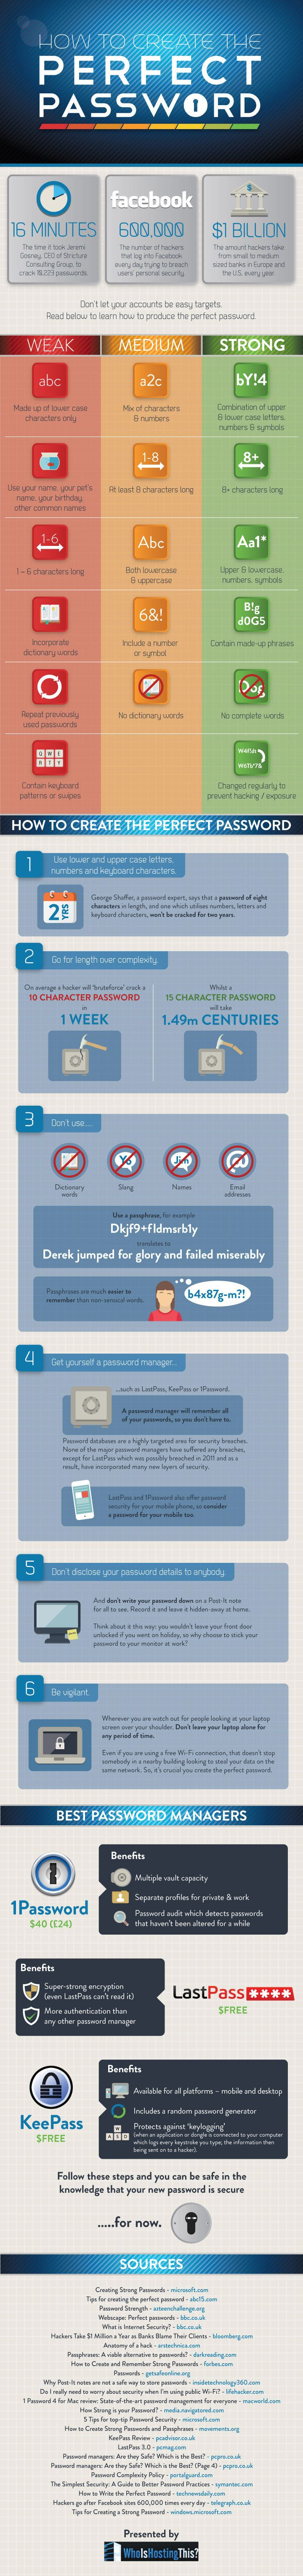 Prevent the next Heartbleed! How to Create a Super Strong Password (Infographic)